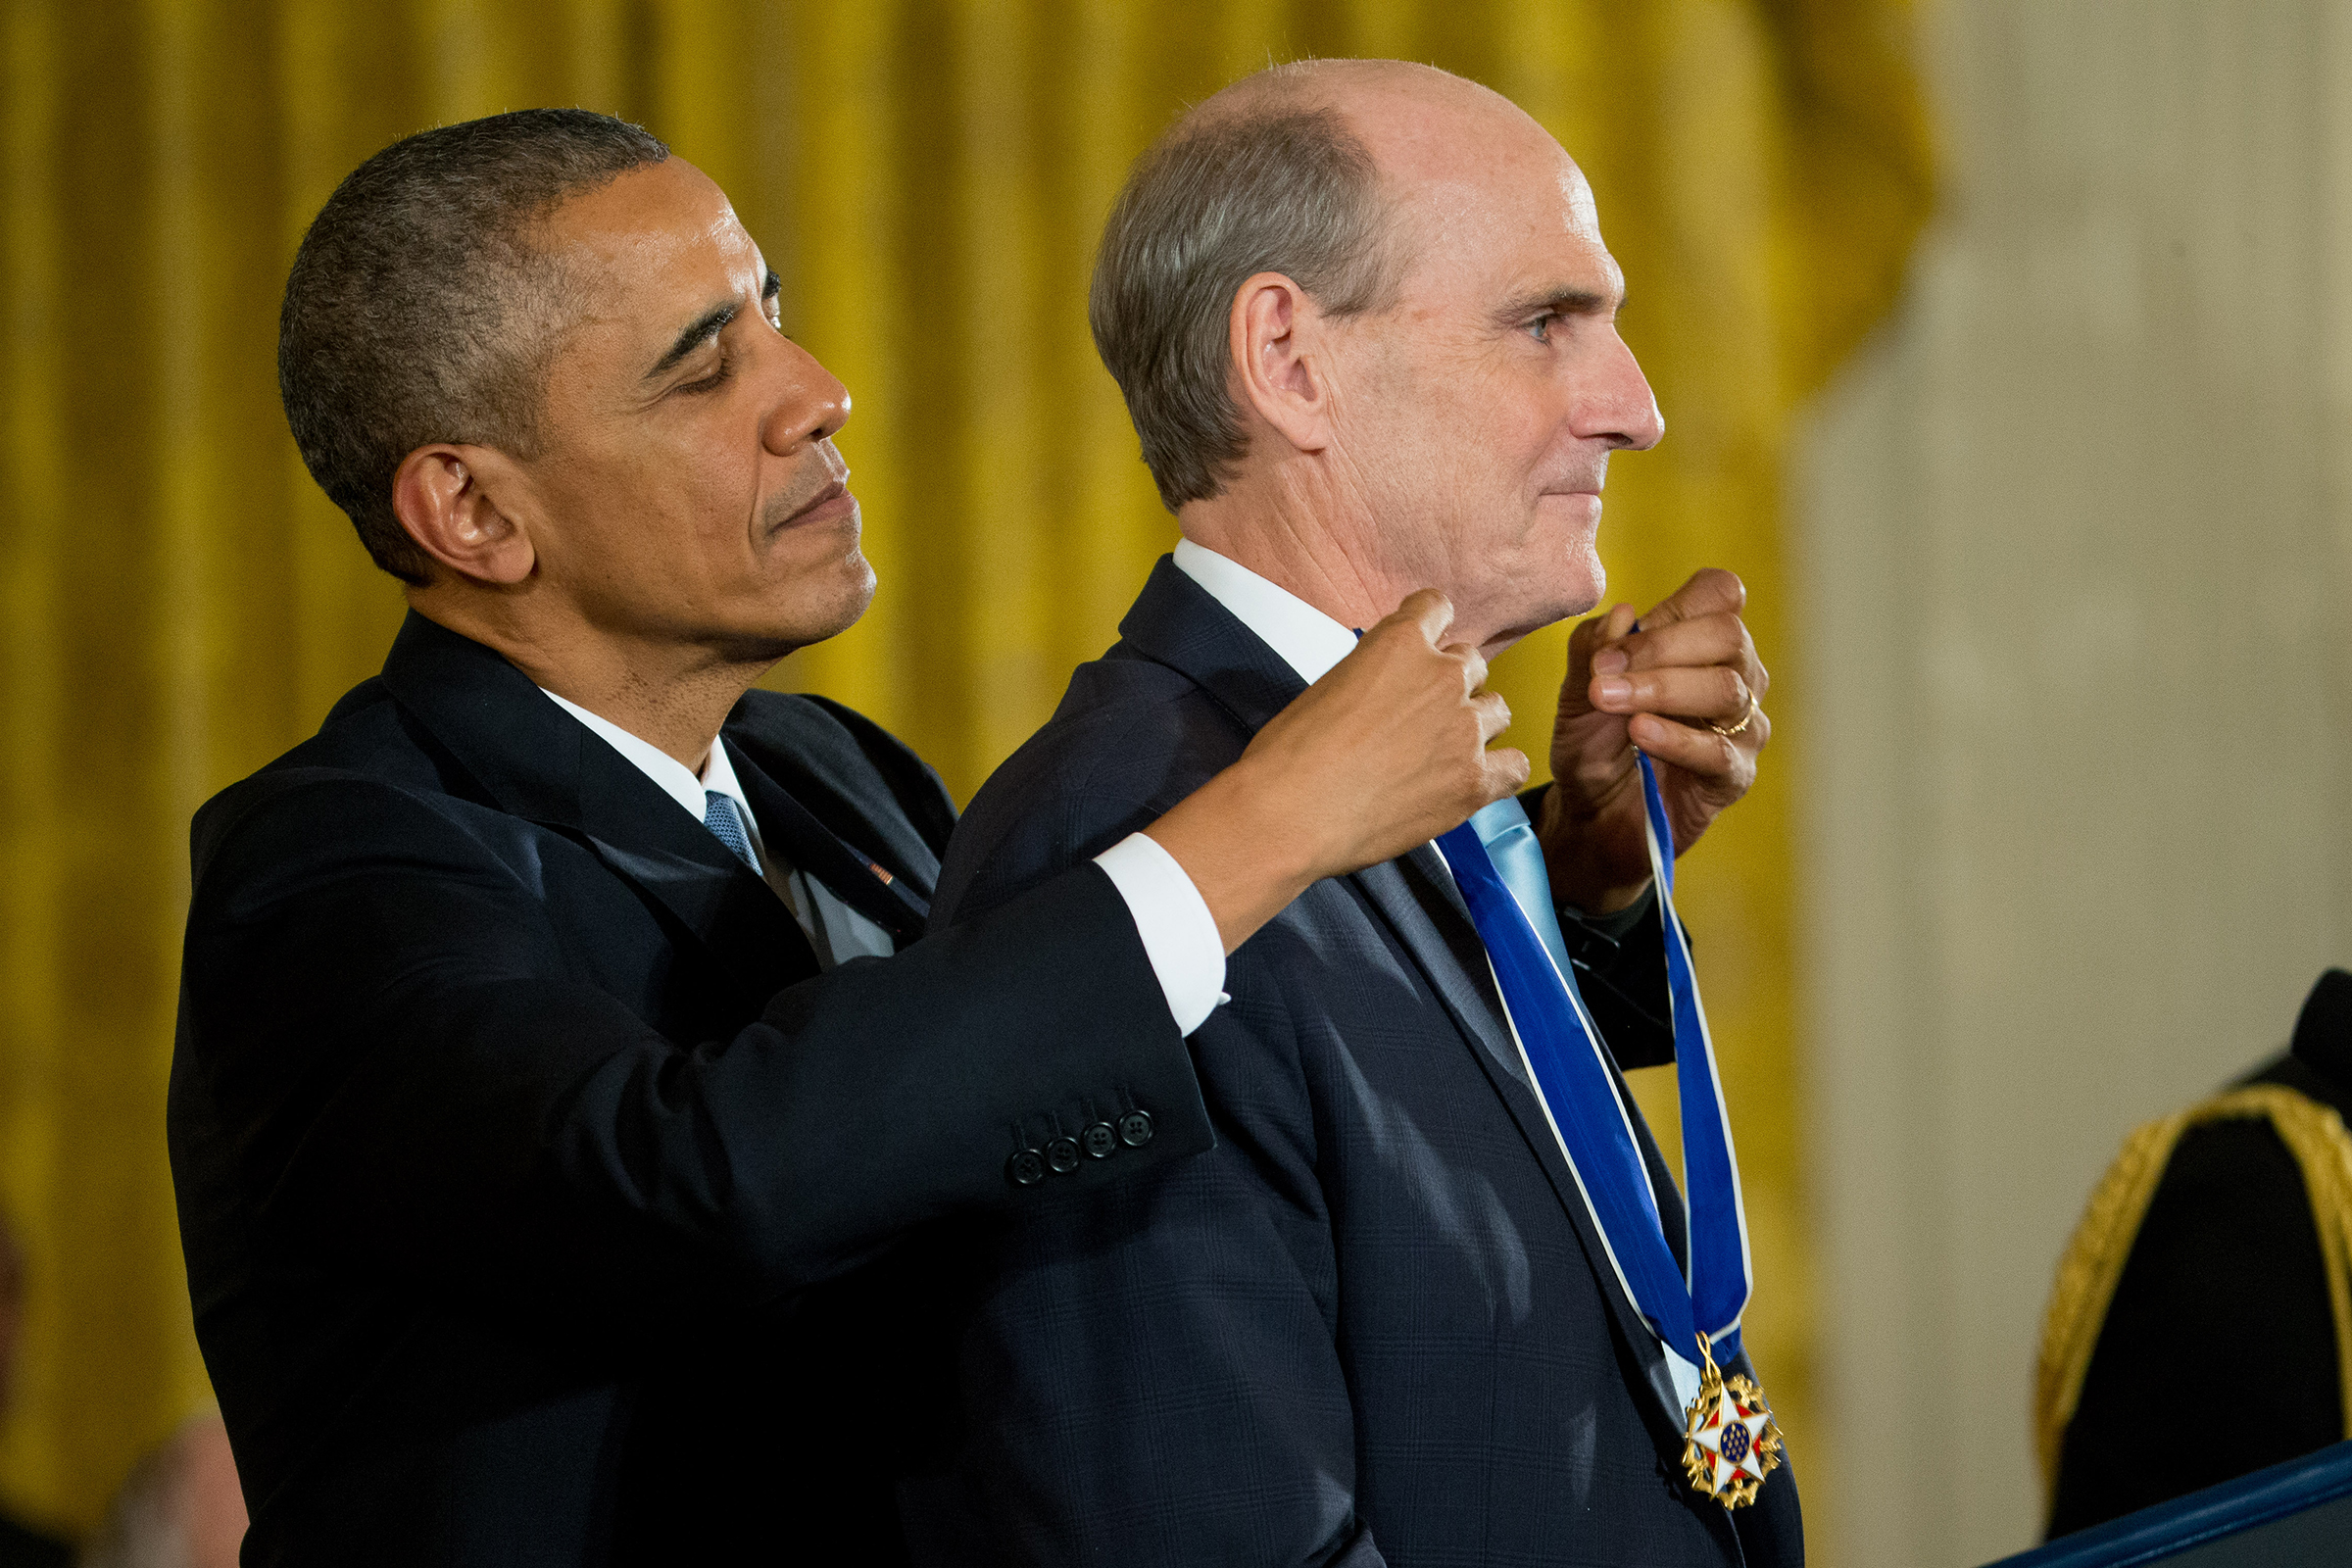 2015: Receives the Presidential Medal of Freedom